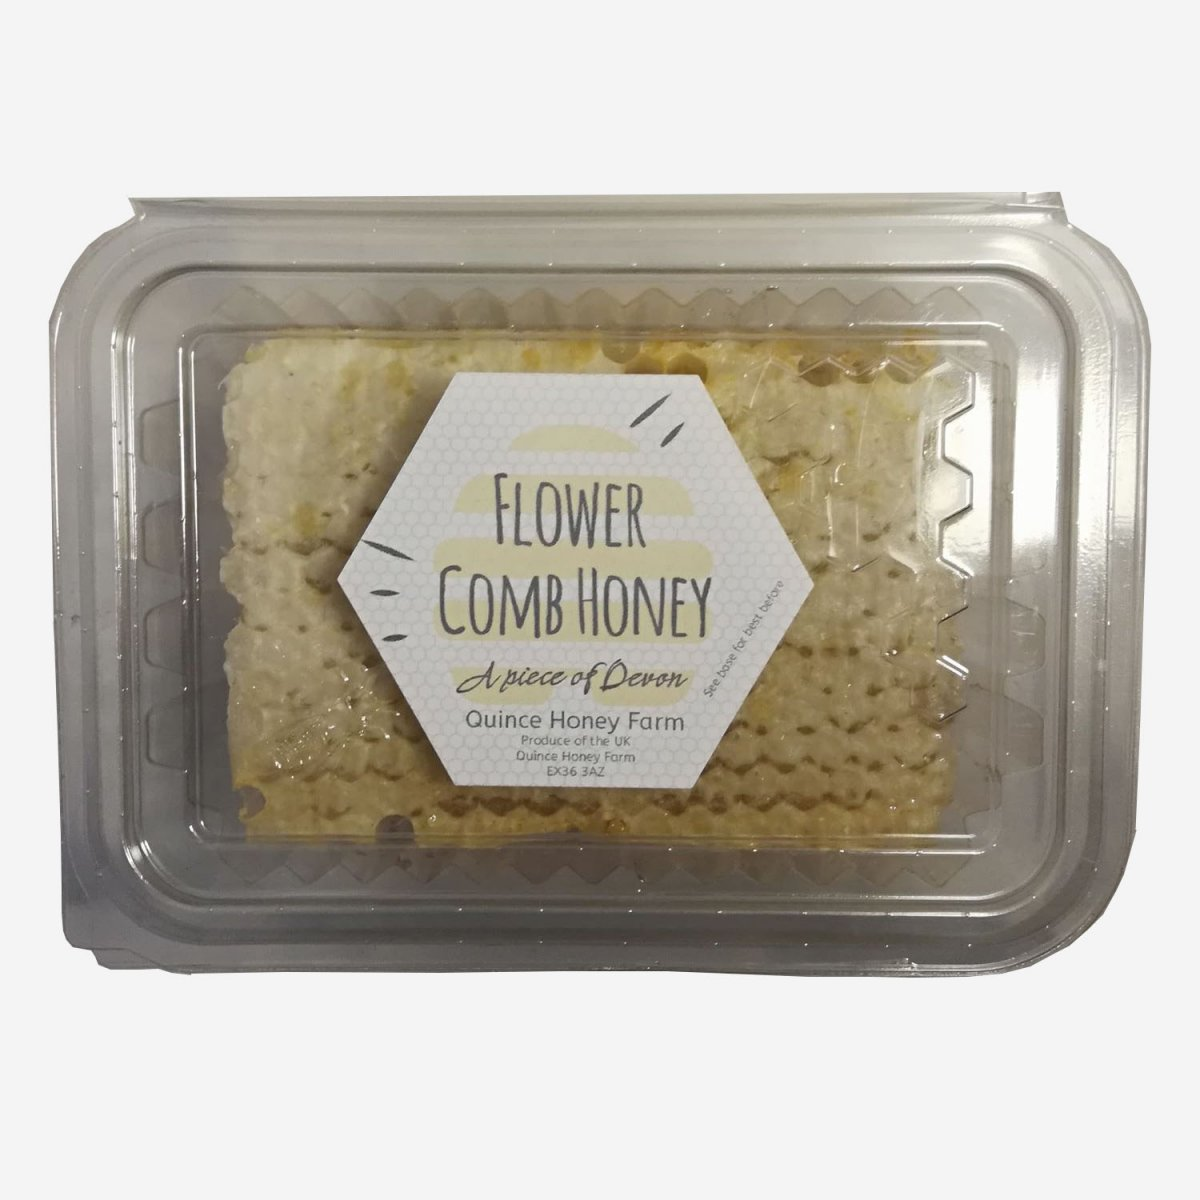 Devon Flower Comb Honey